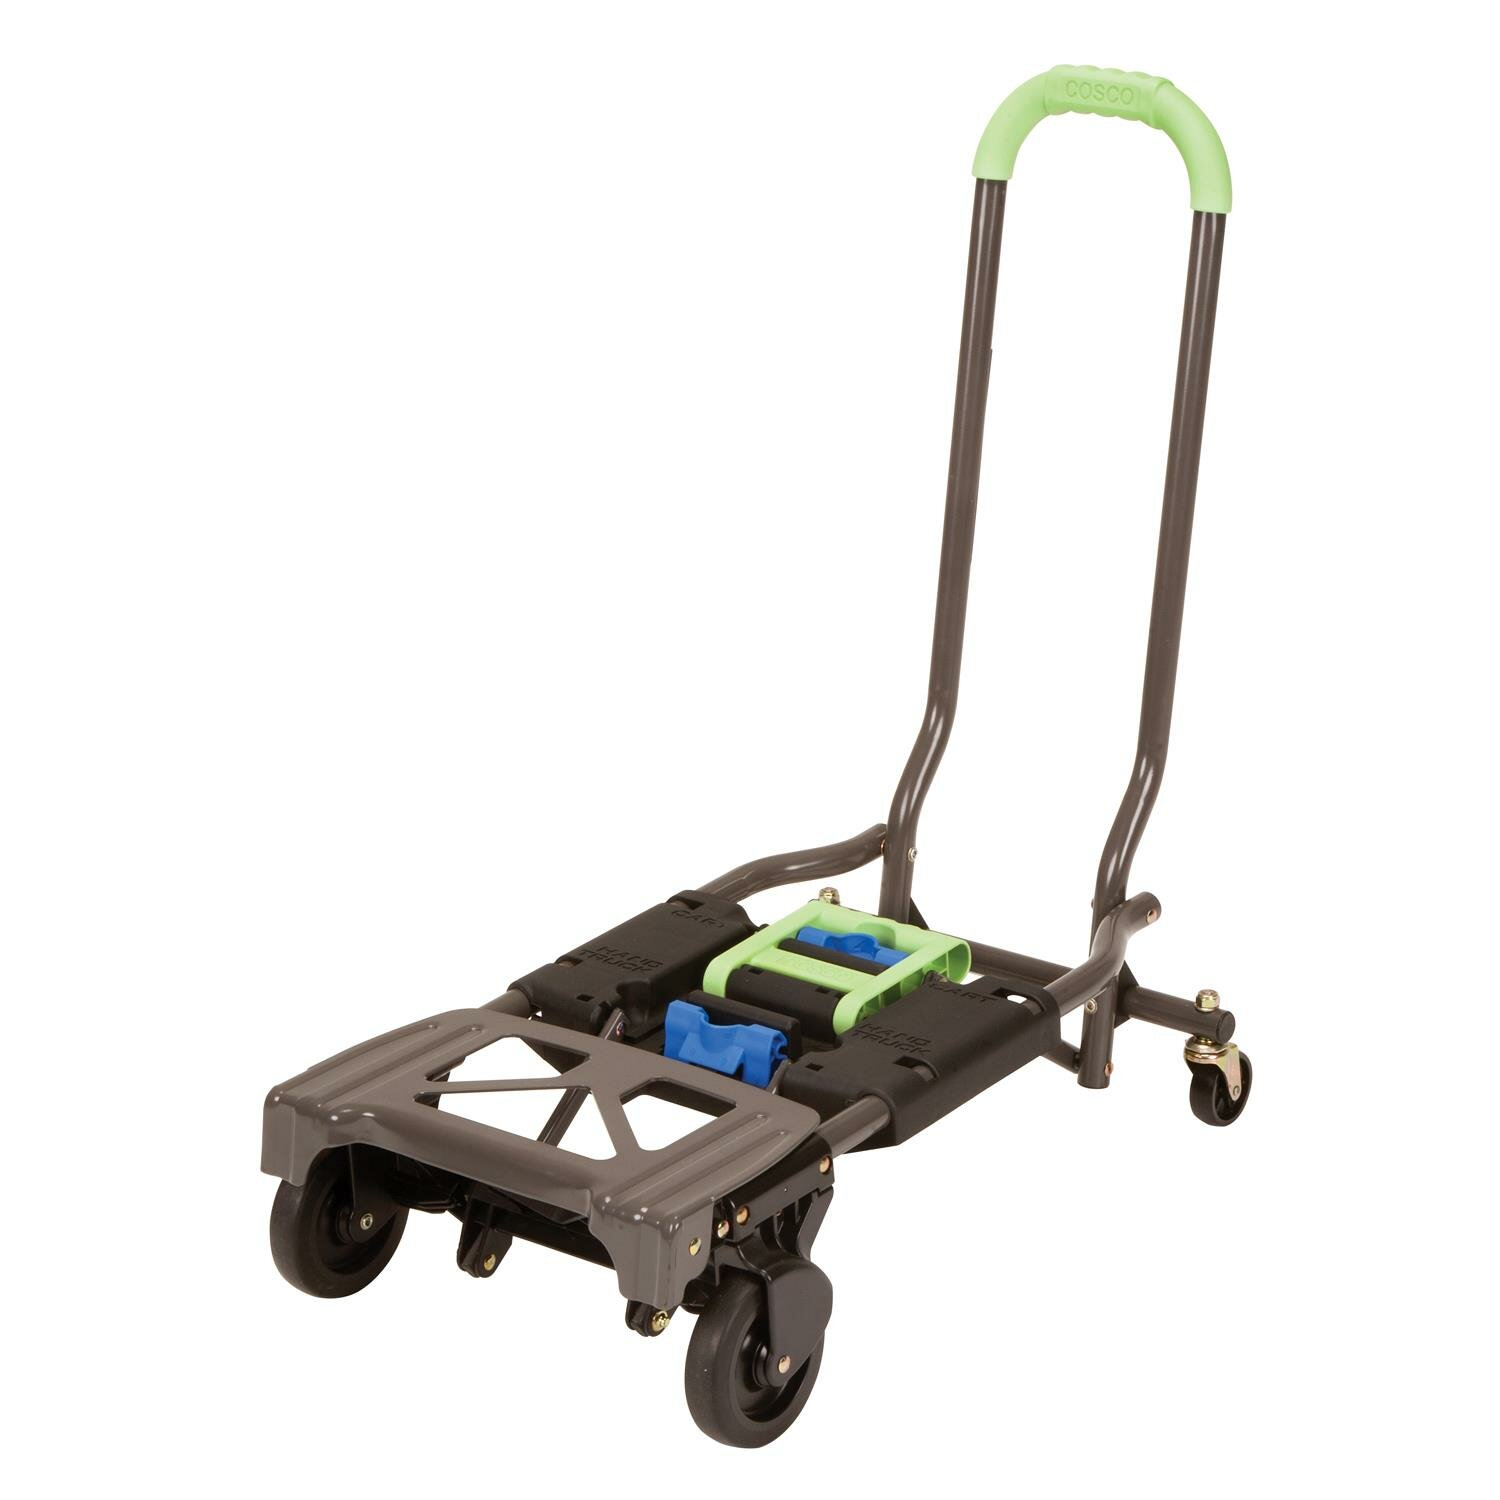 Cosco Home And Office 300 Lb Capacity Shifter Multi Position Folding Hand Truck Dolly Reviews Wayfair